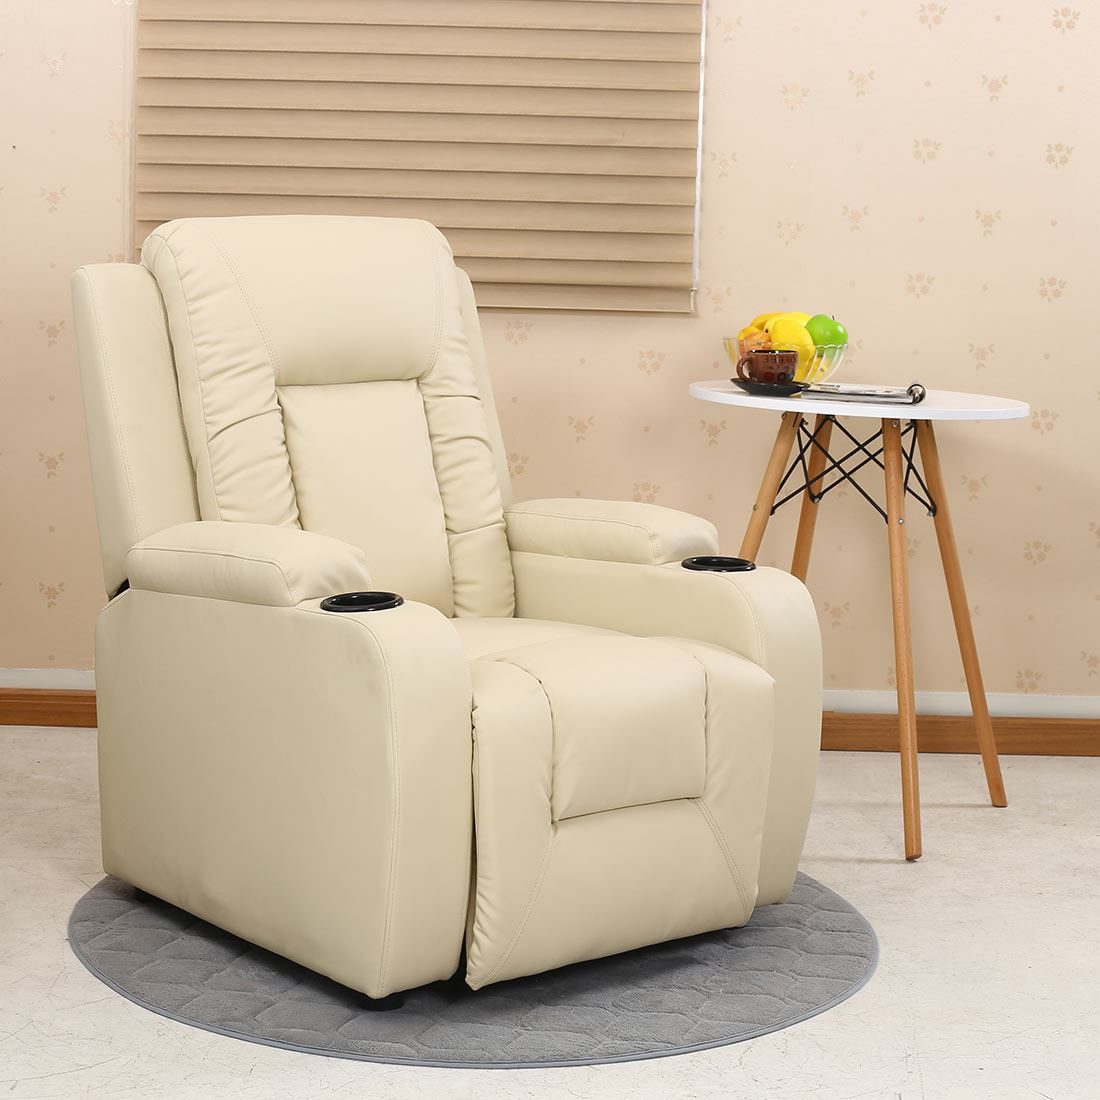 Charmant OSCAR LEATHER RECLINER W DRINK HOLDERS ARMCHAIR SOFA